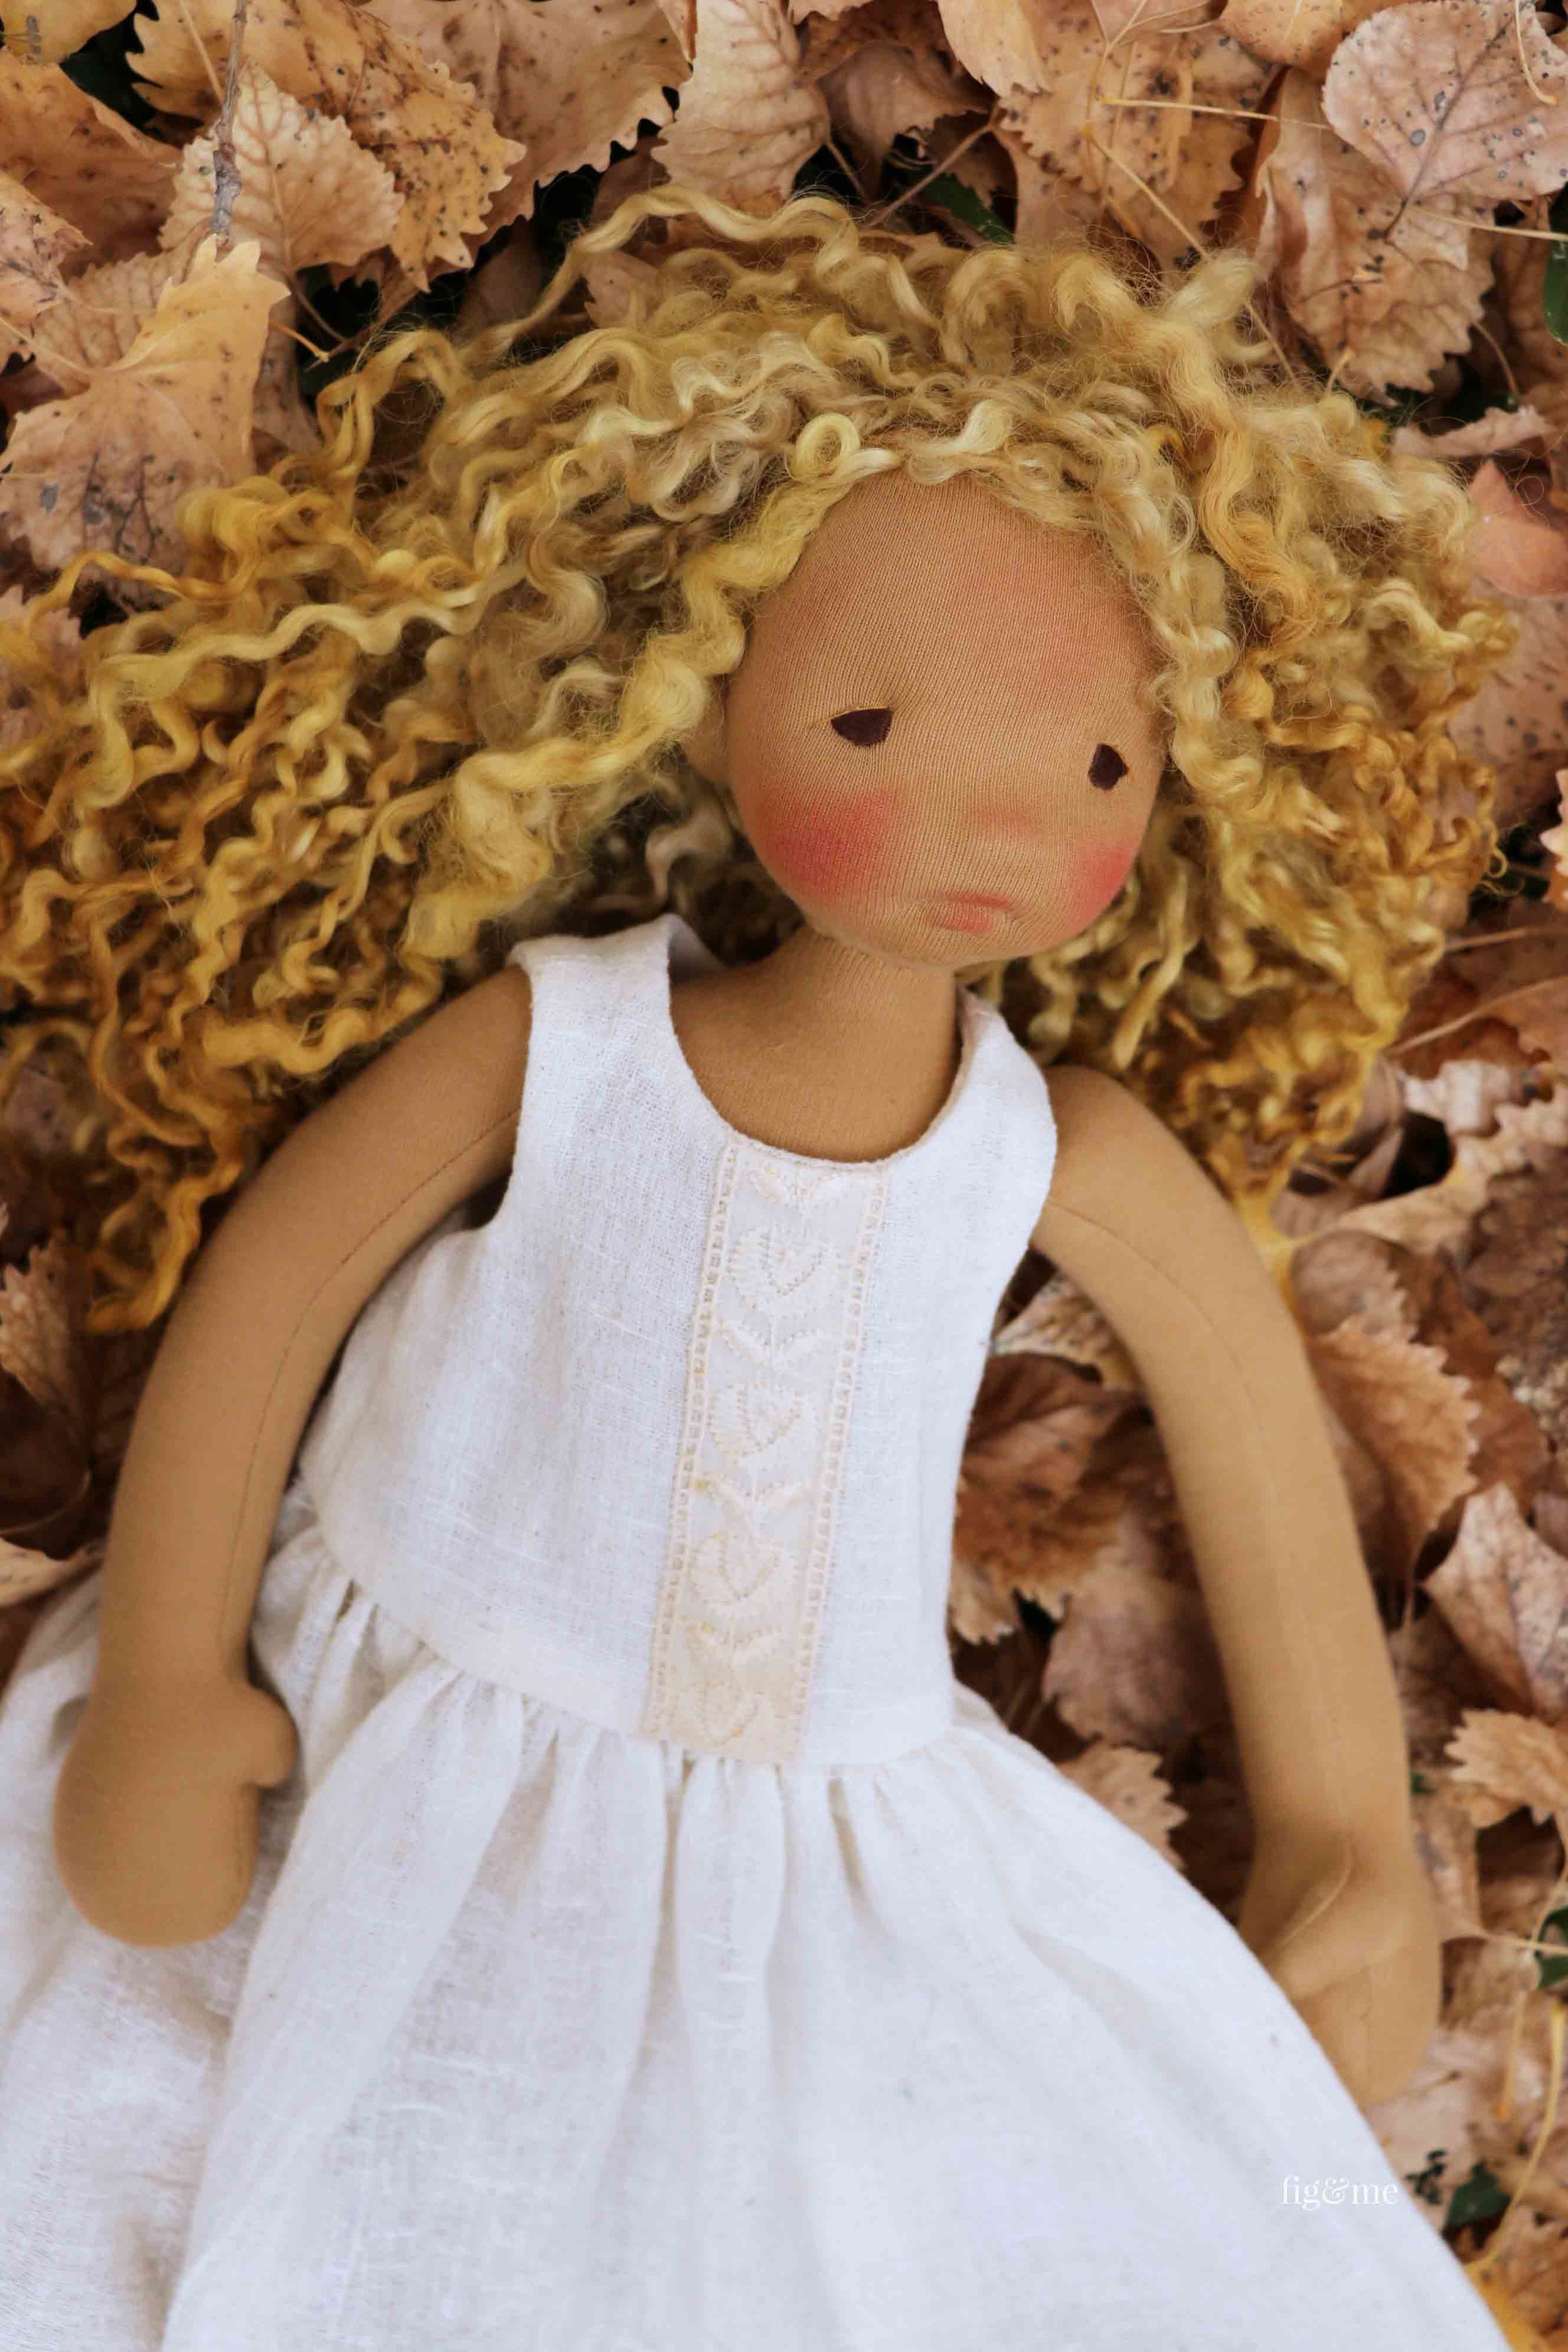 Mori, natural fiber art doll wearing a white gauze full petticoat or slip, by fig and me.